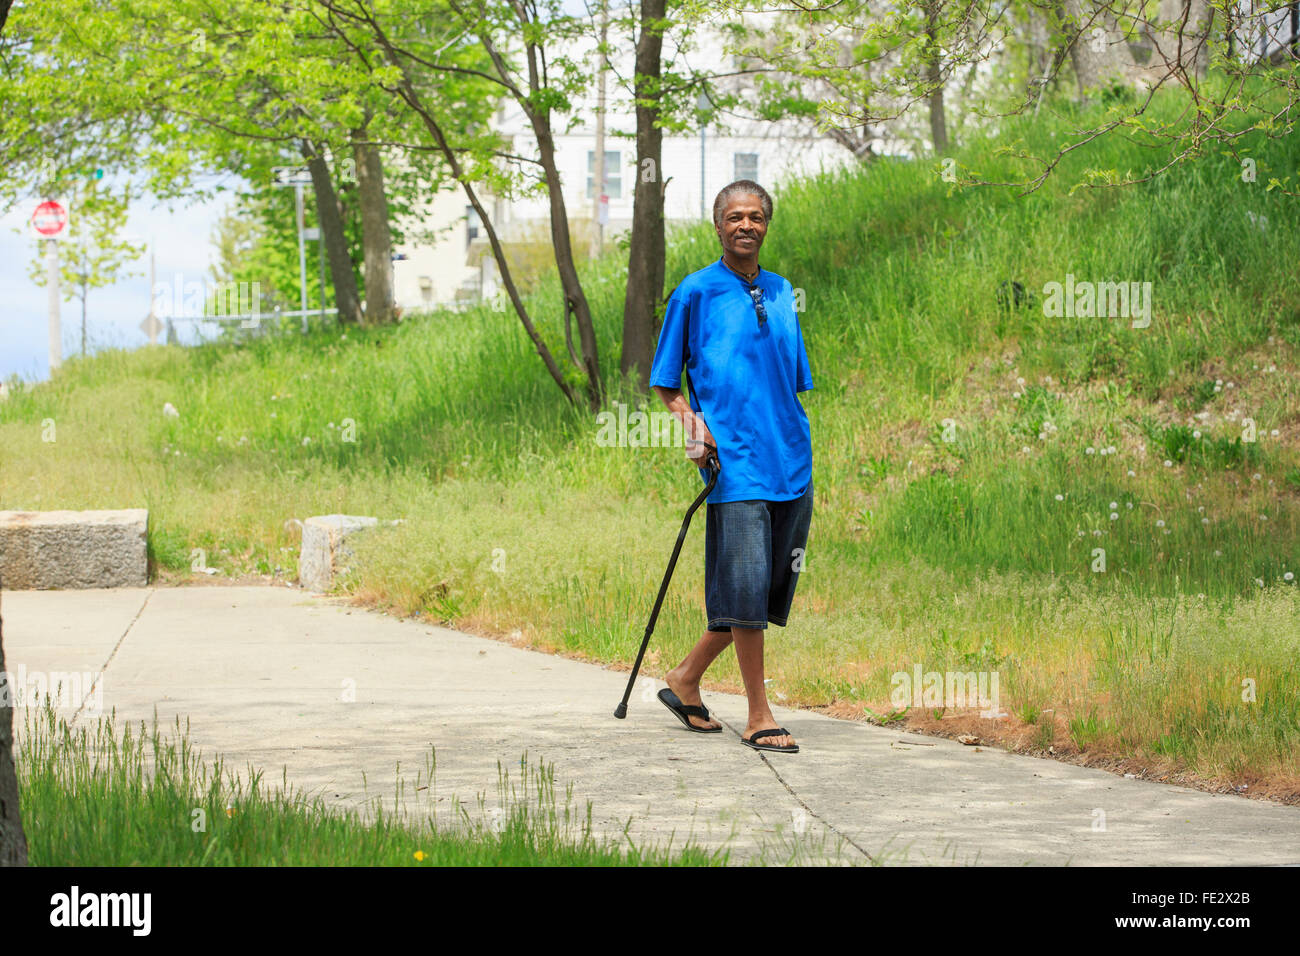 Man with Traumatic Brain Injury taking a walk with his cane - Stock Image